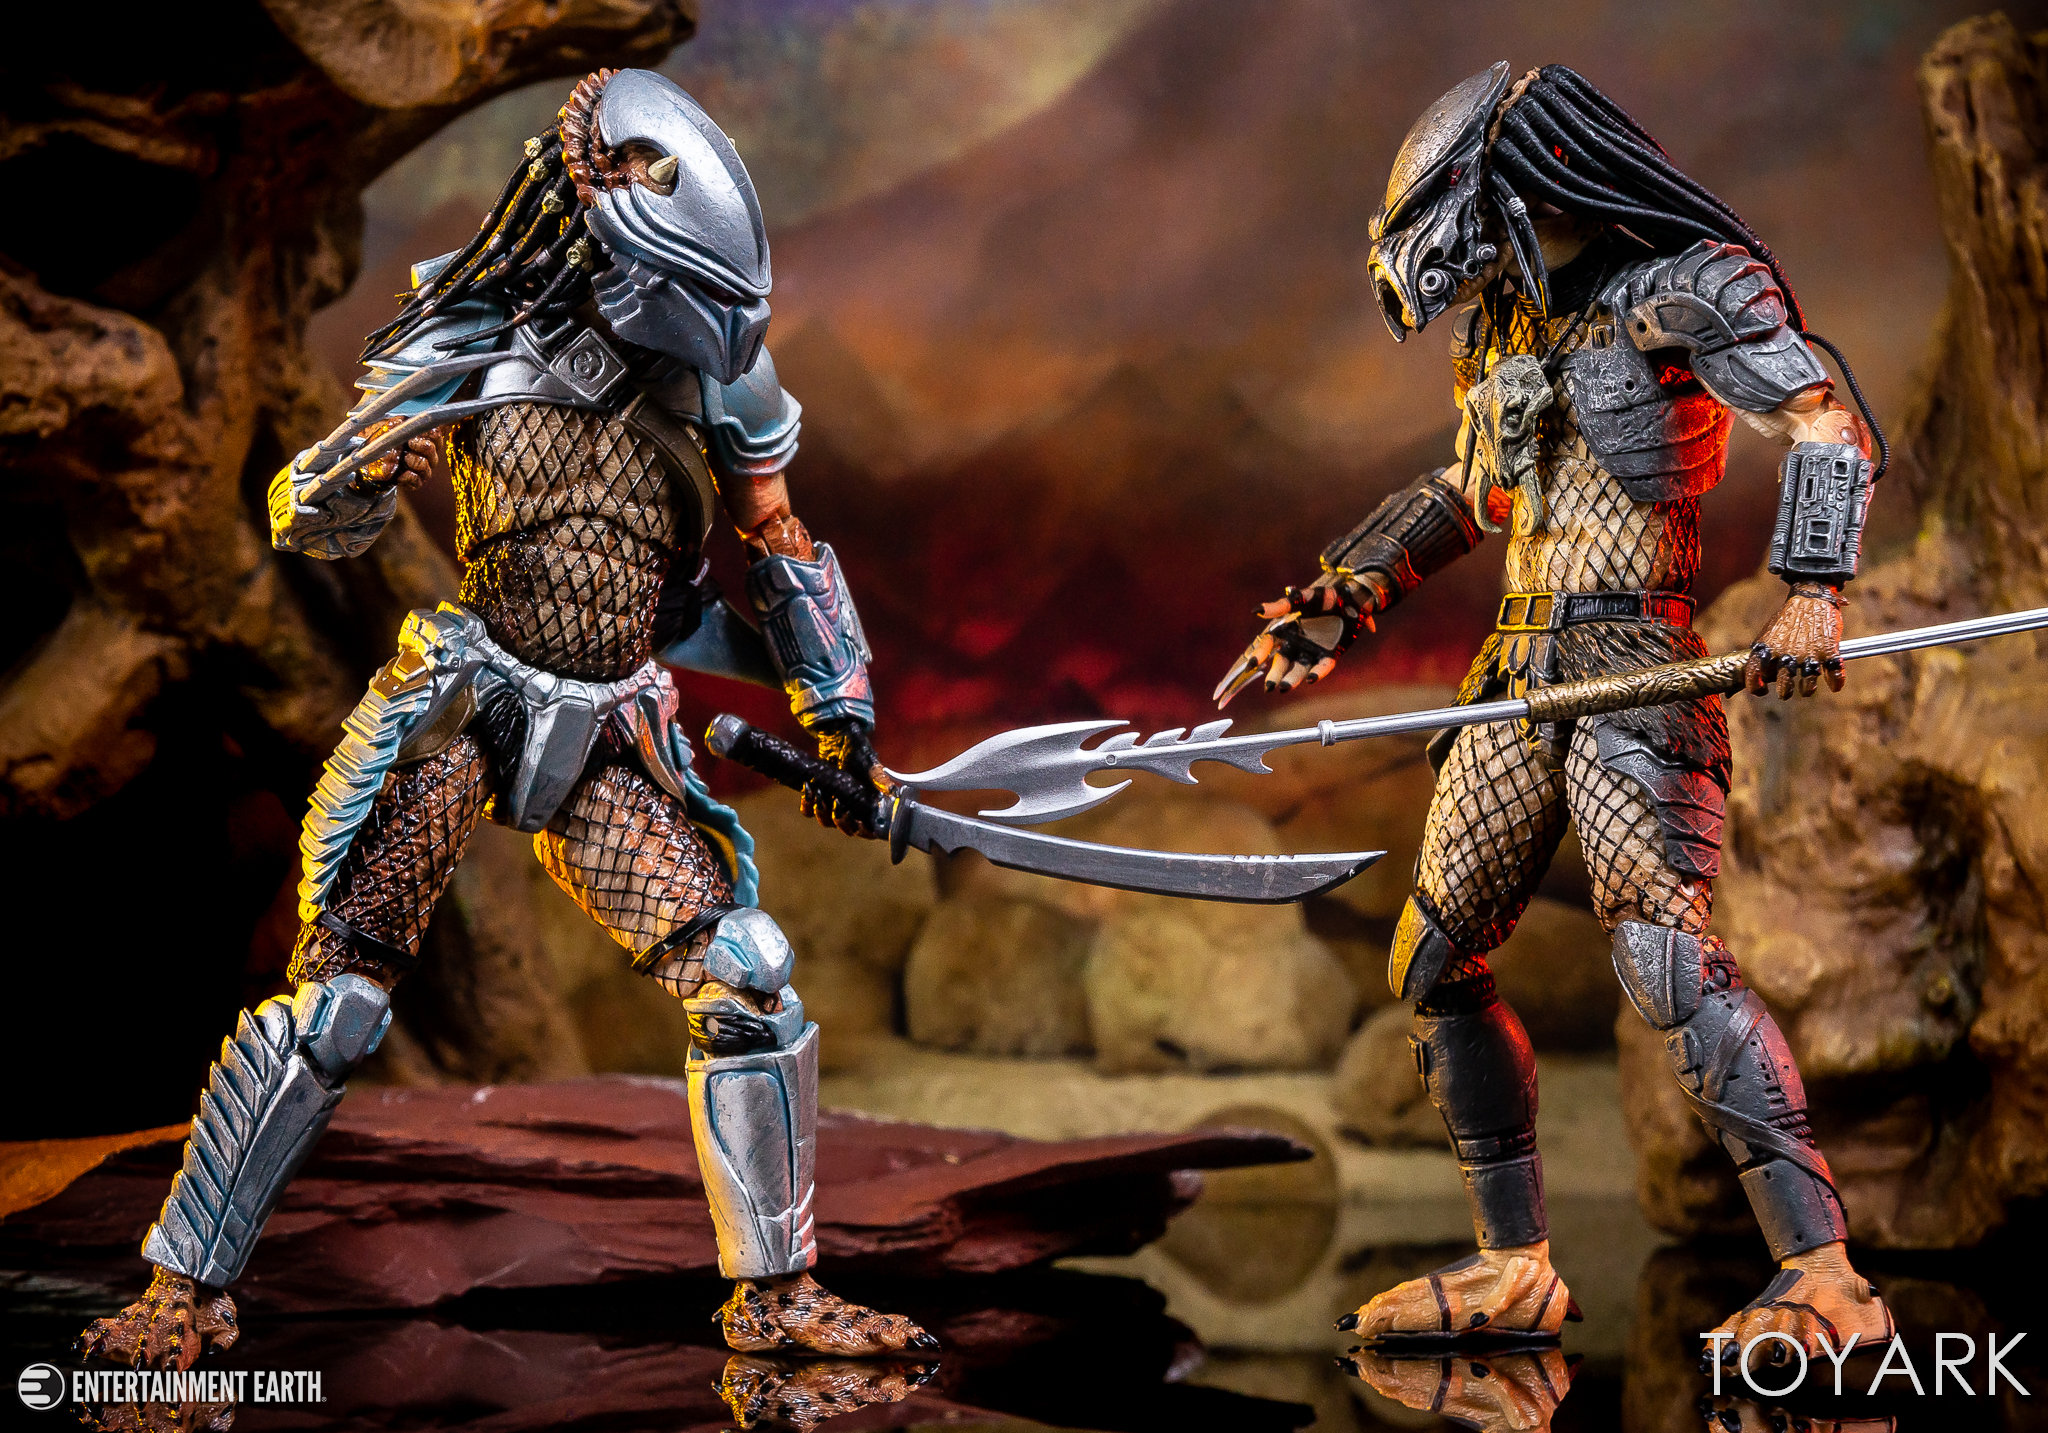 https://news.toyark.com/wp-content/uploads/sites/4/2019/01/Predator-NECA-Series-18-Figures-063.jpg